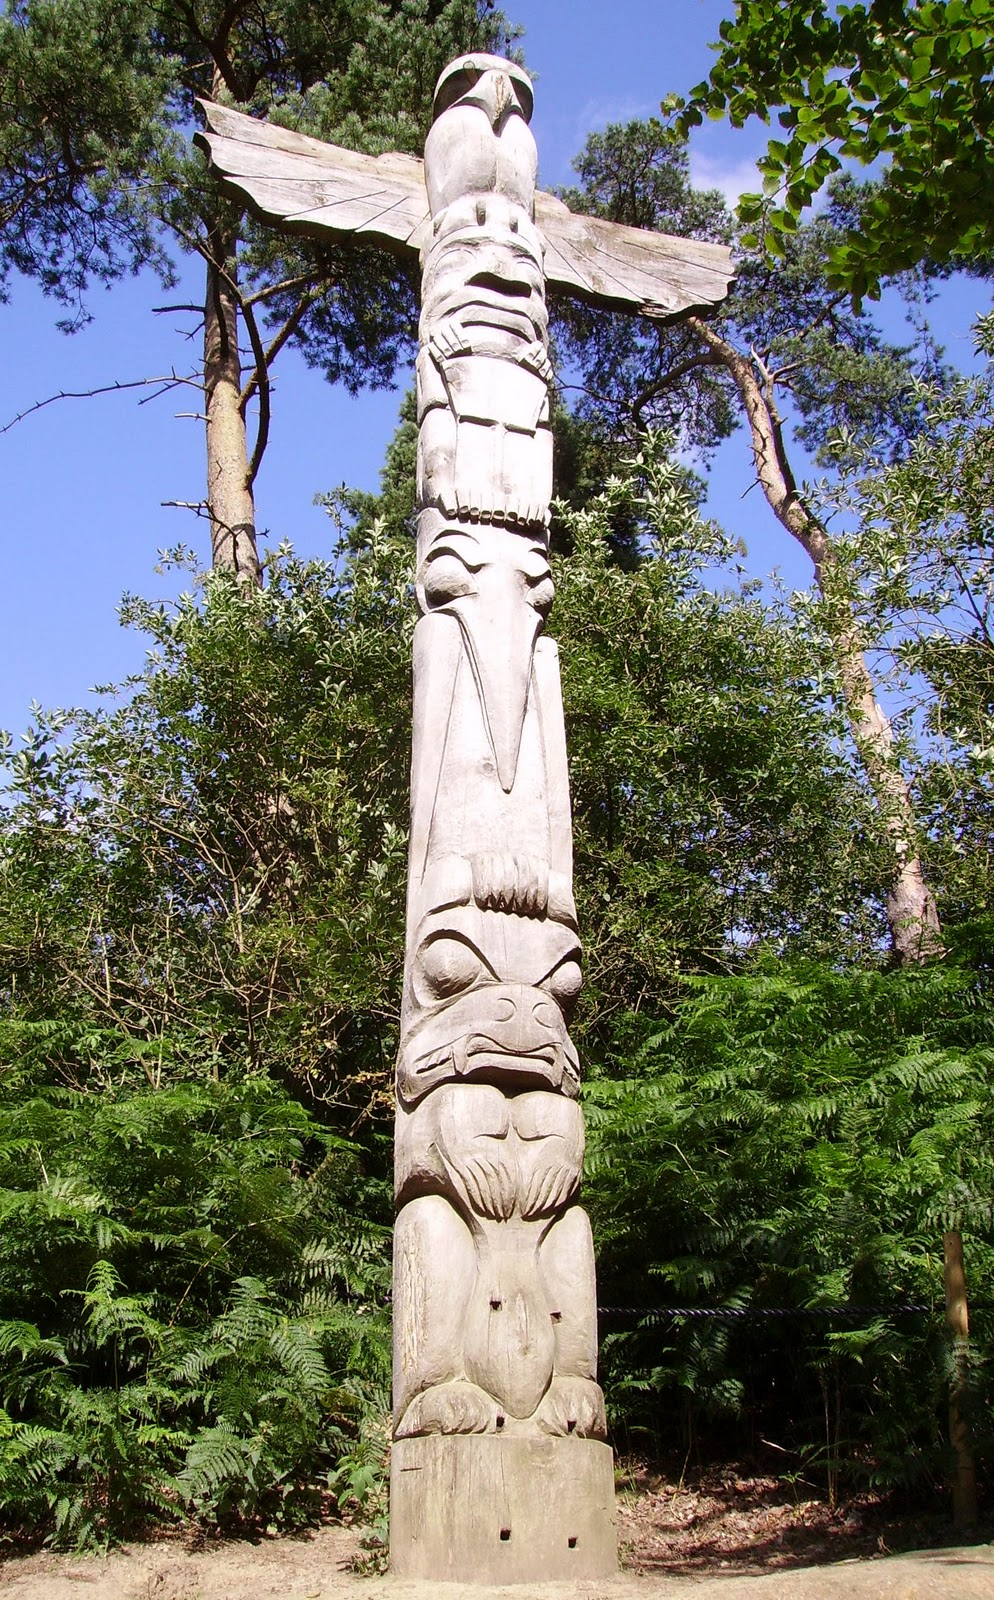 totem poles as a spiritual form Totem poles were built by about 30 native american tribes living along the northwest pacific coast of north america these wooden towers, carved with images of animals and symbols, were monuments expressing a family's status within a tribe.